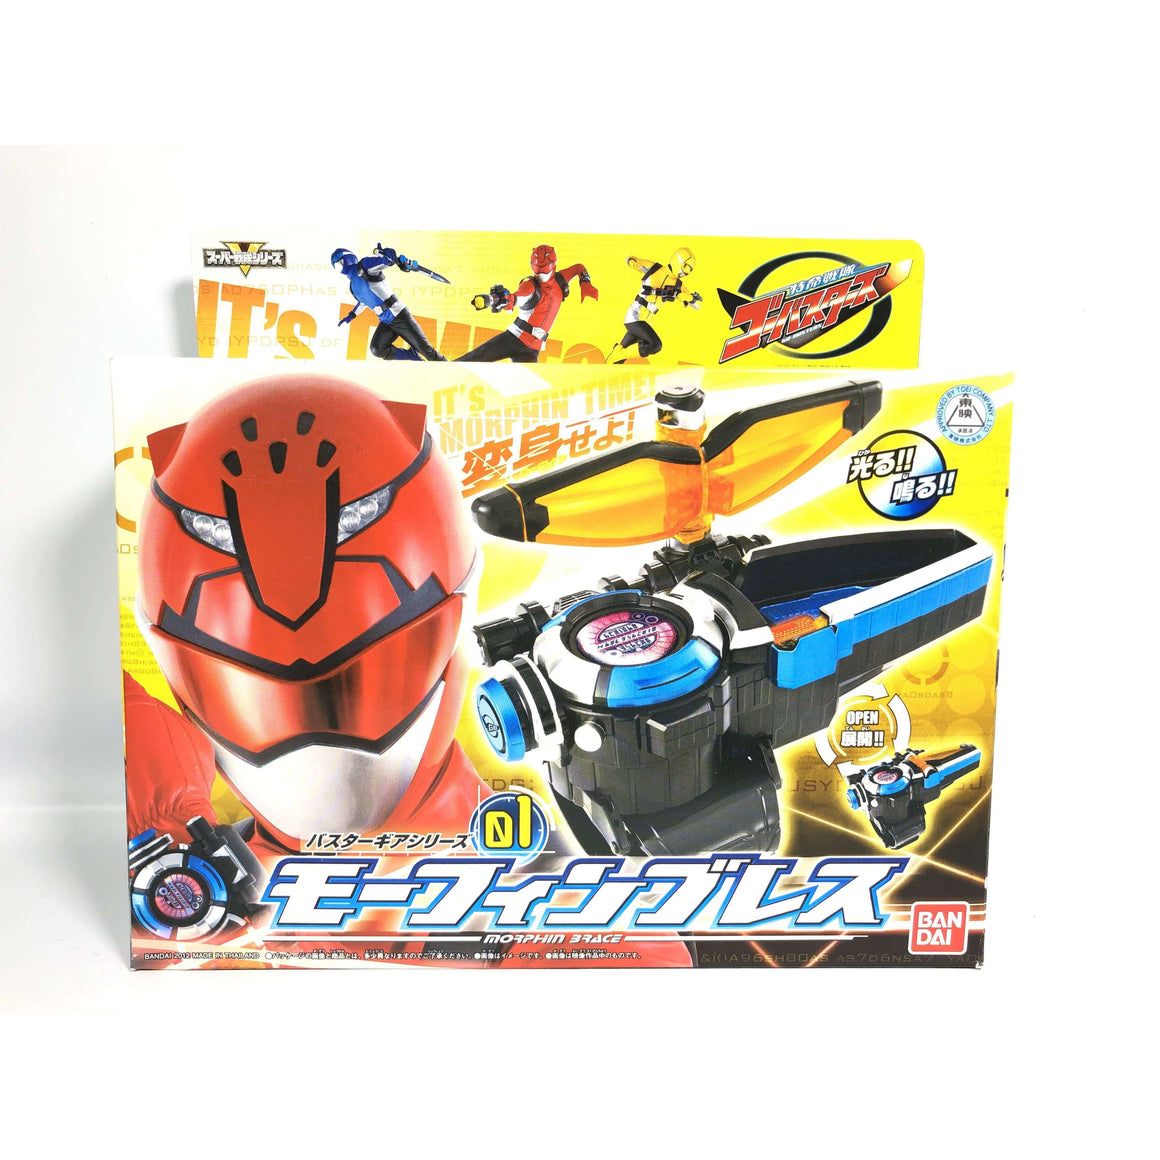 CSTOYS INTERNATIONAL:3000000420362[BOXED] Tokumei Sentai Go-Busters: Buster Gear Series 01 Morphin Brace